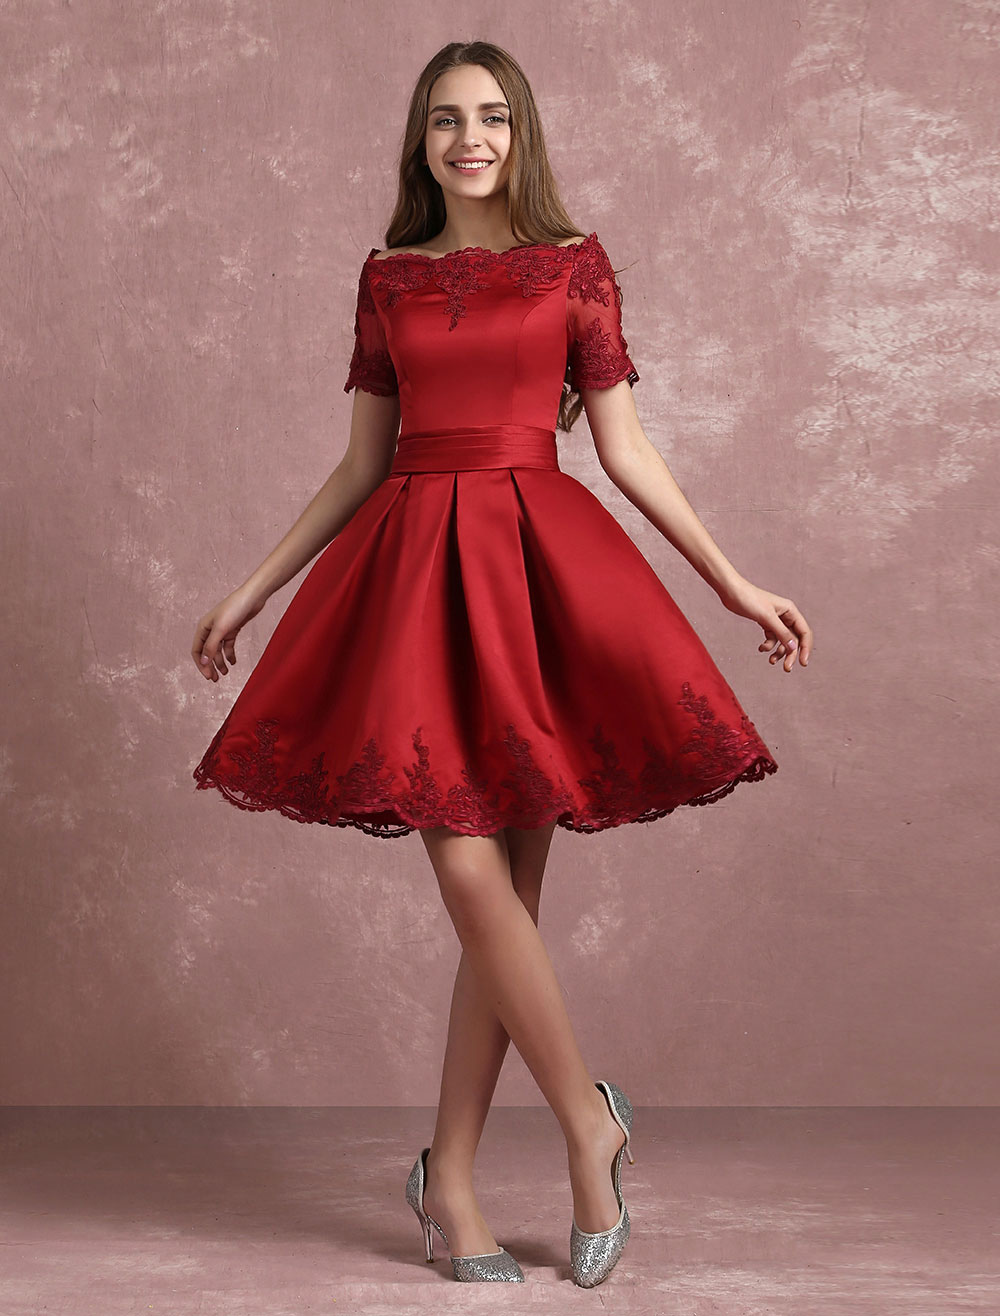 Buy Burgundy Homecoming Dress Bateau Lace Applique Short Prom Dress Satin Short Sleeve Pleated A Line Party Dress for $100.79 in Milanoo store